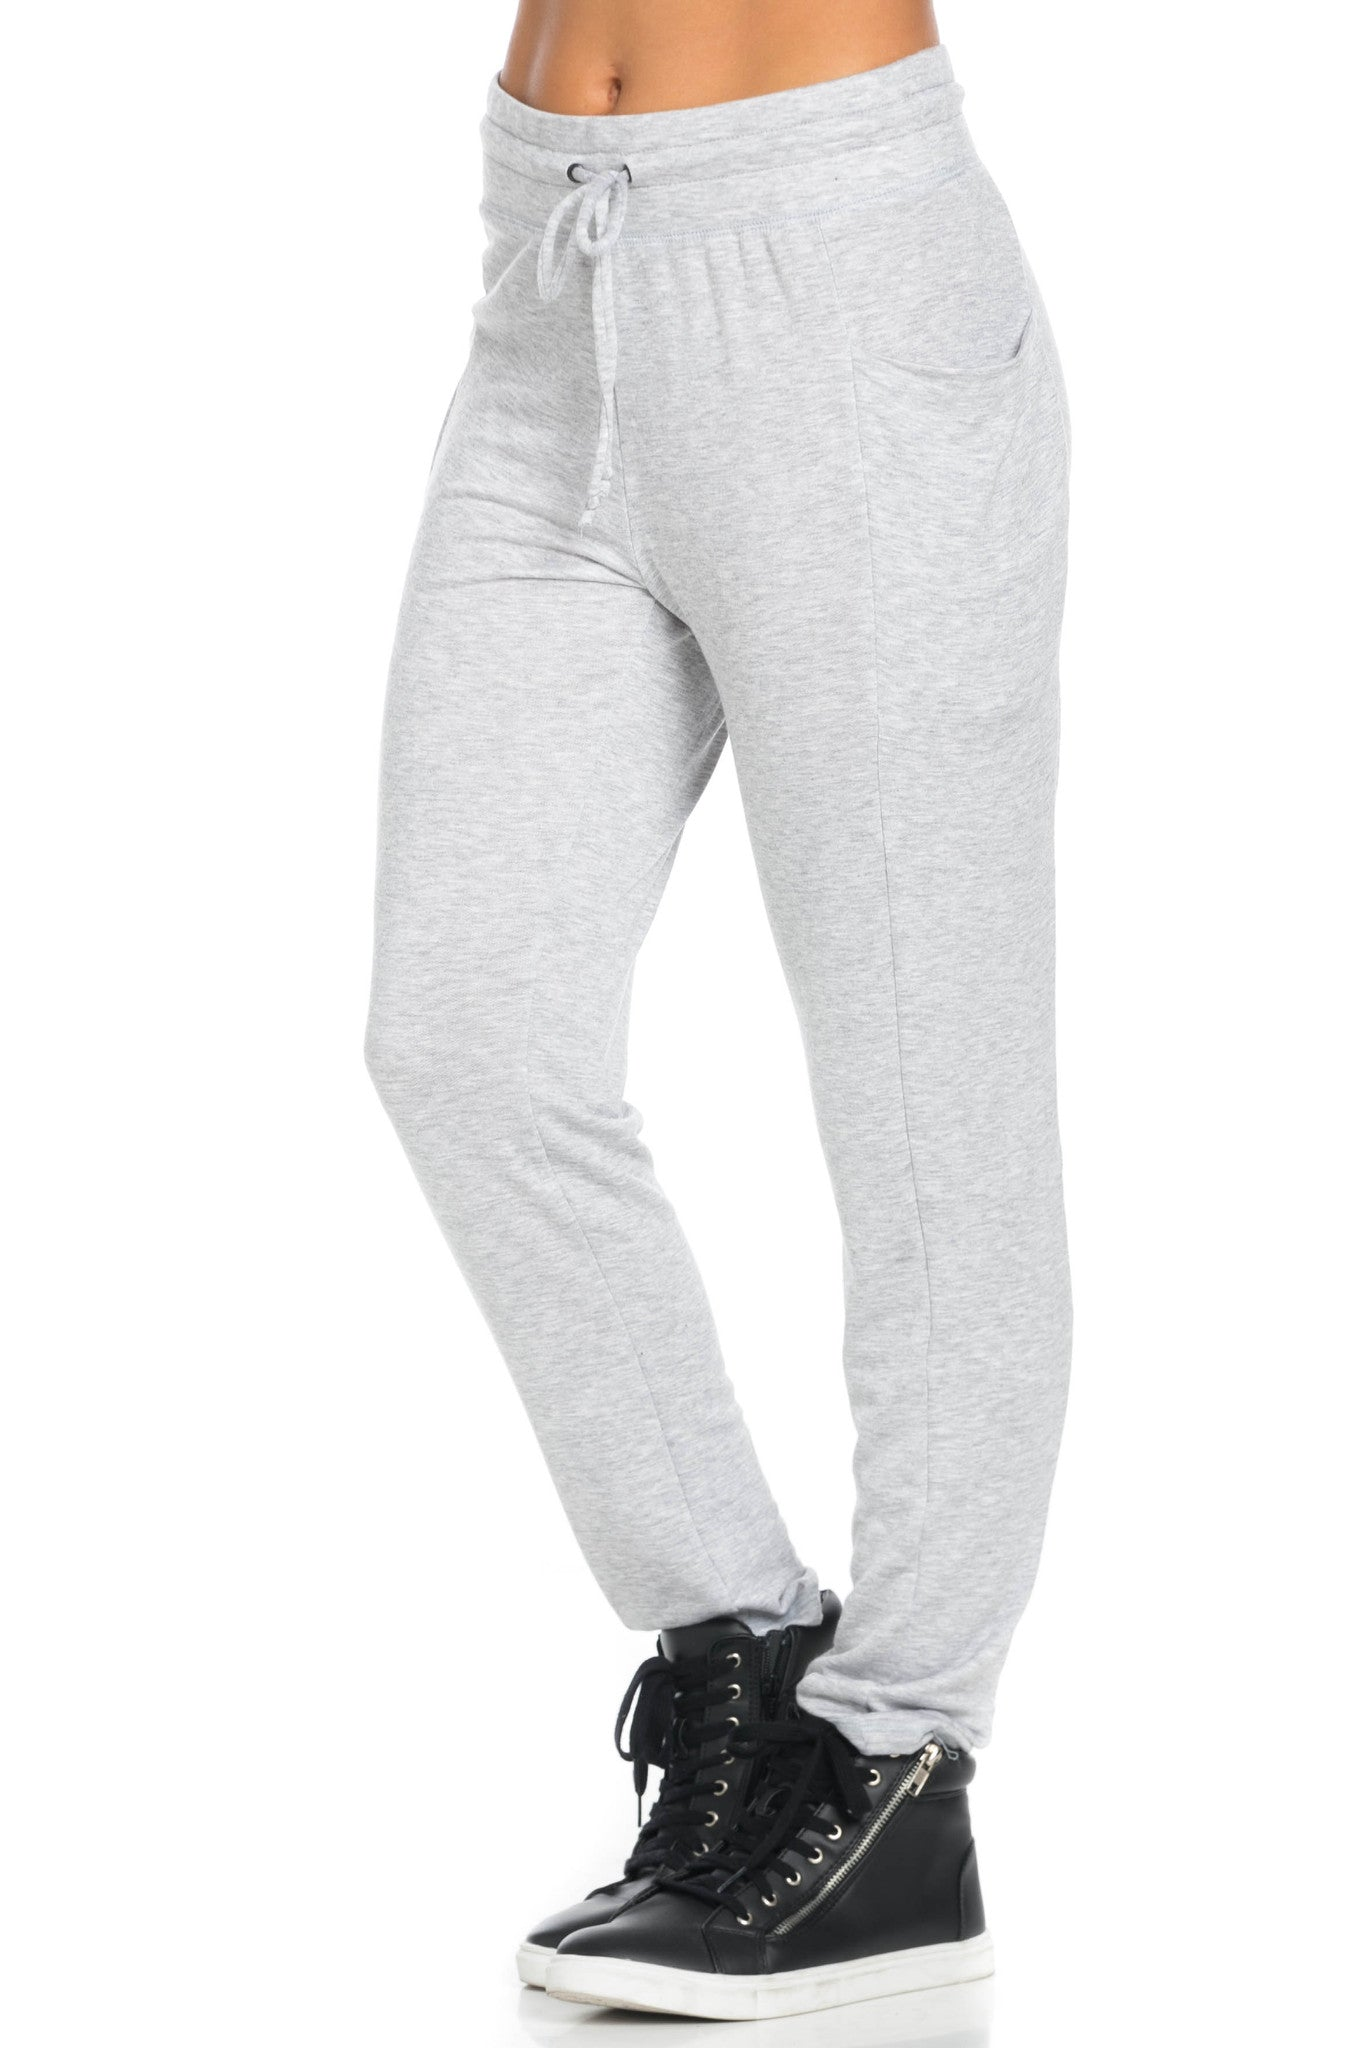 Heather Grey Harem Pants - Pants - My Yuccie - 4